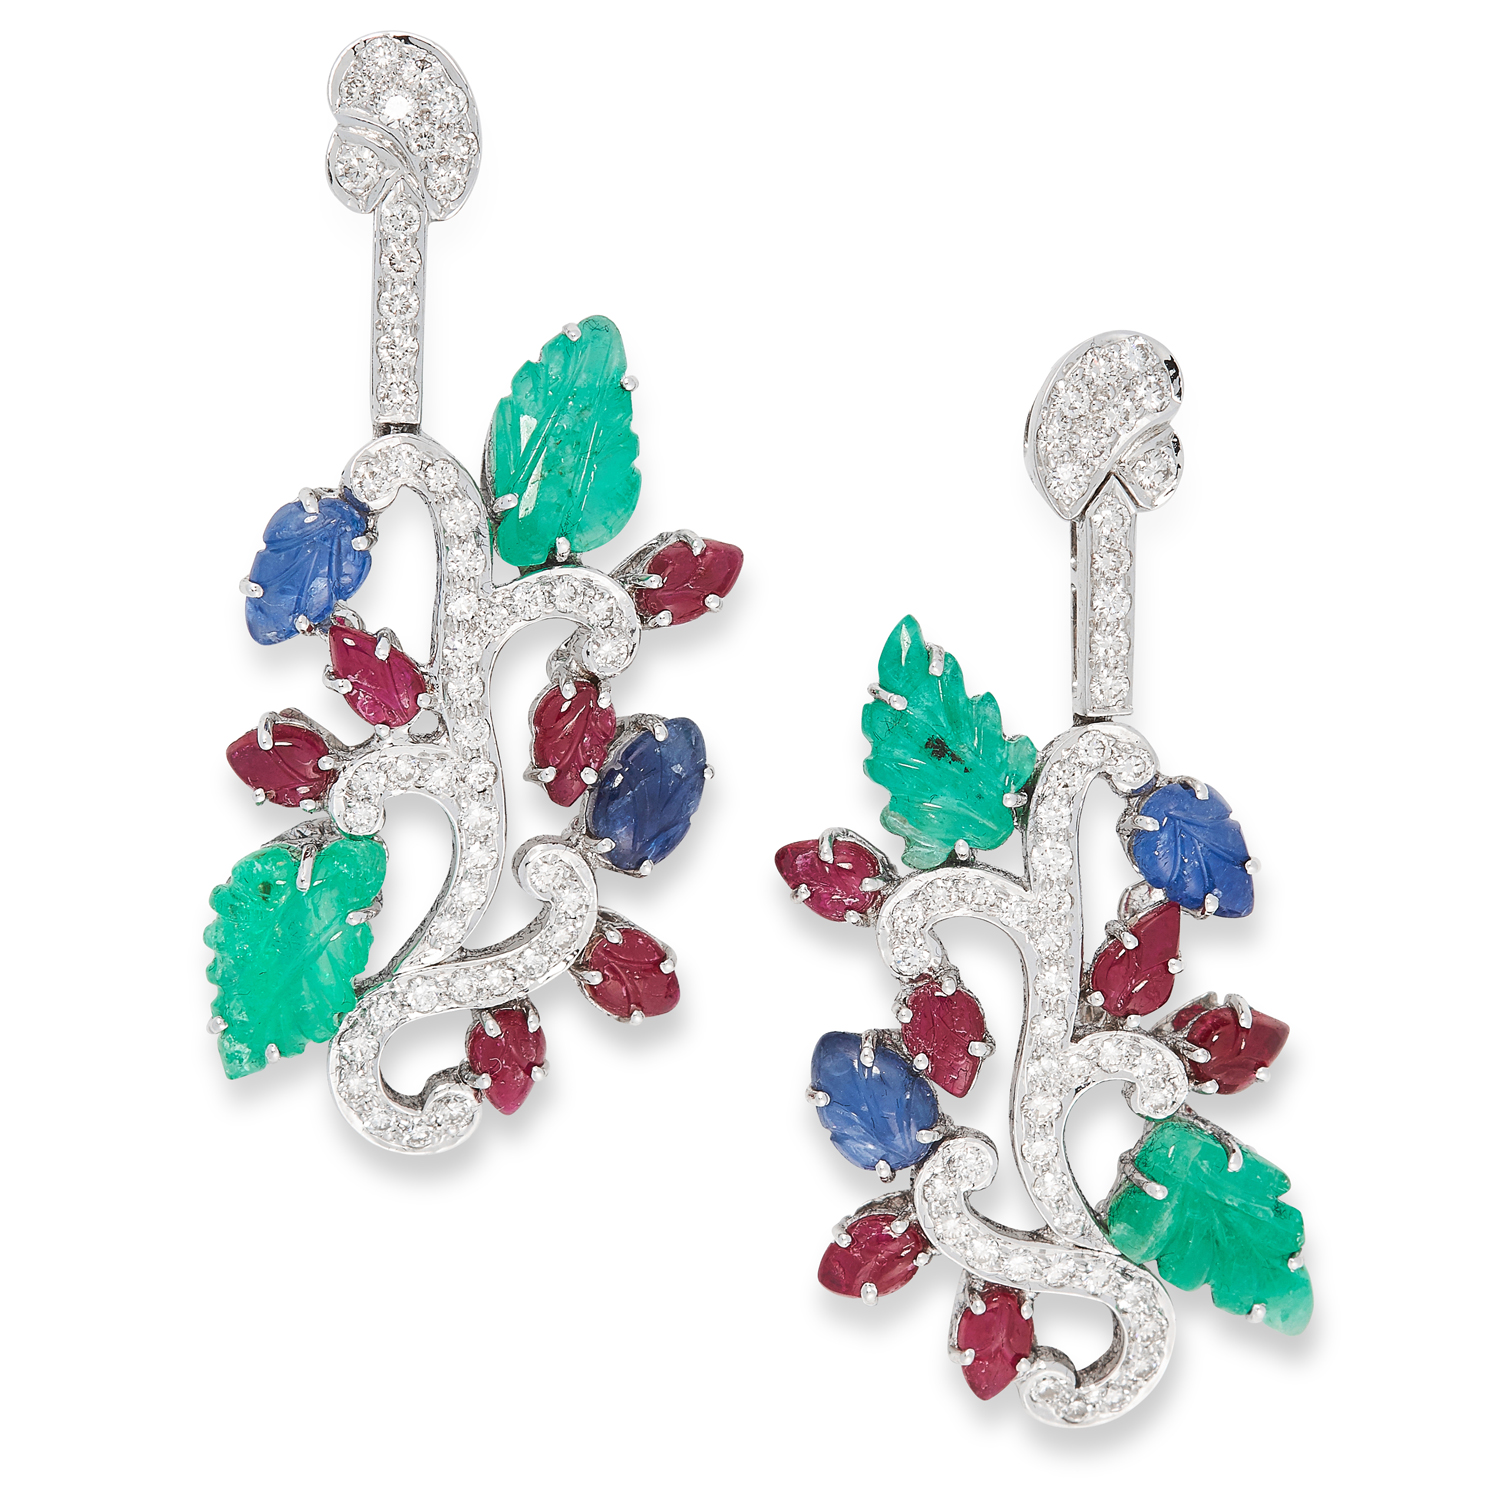 A PAIR OF EMERALD, SAPPHIRE, RUBY AND DIAMOND TUTTI FRUTTI EARRINGS in 18ct white gold, set with